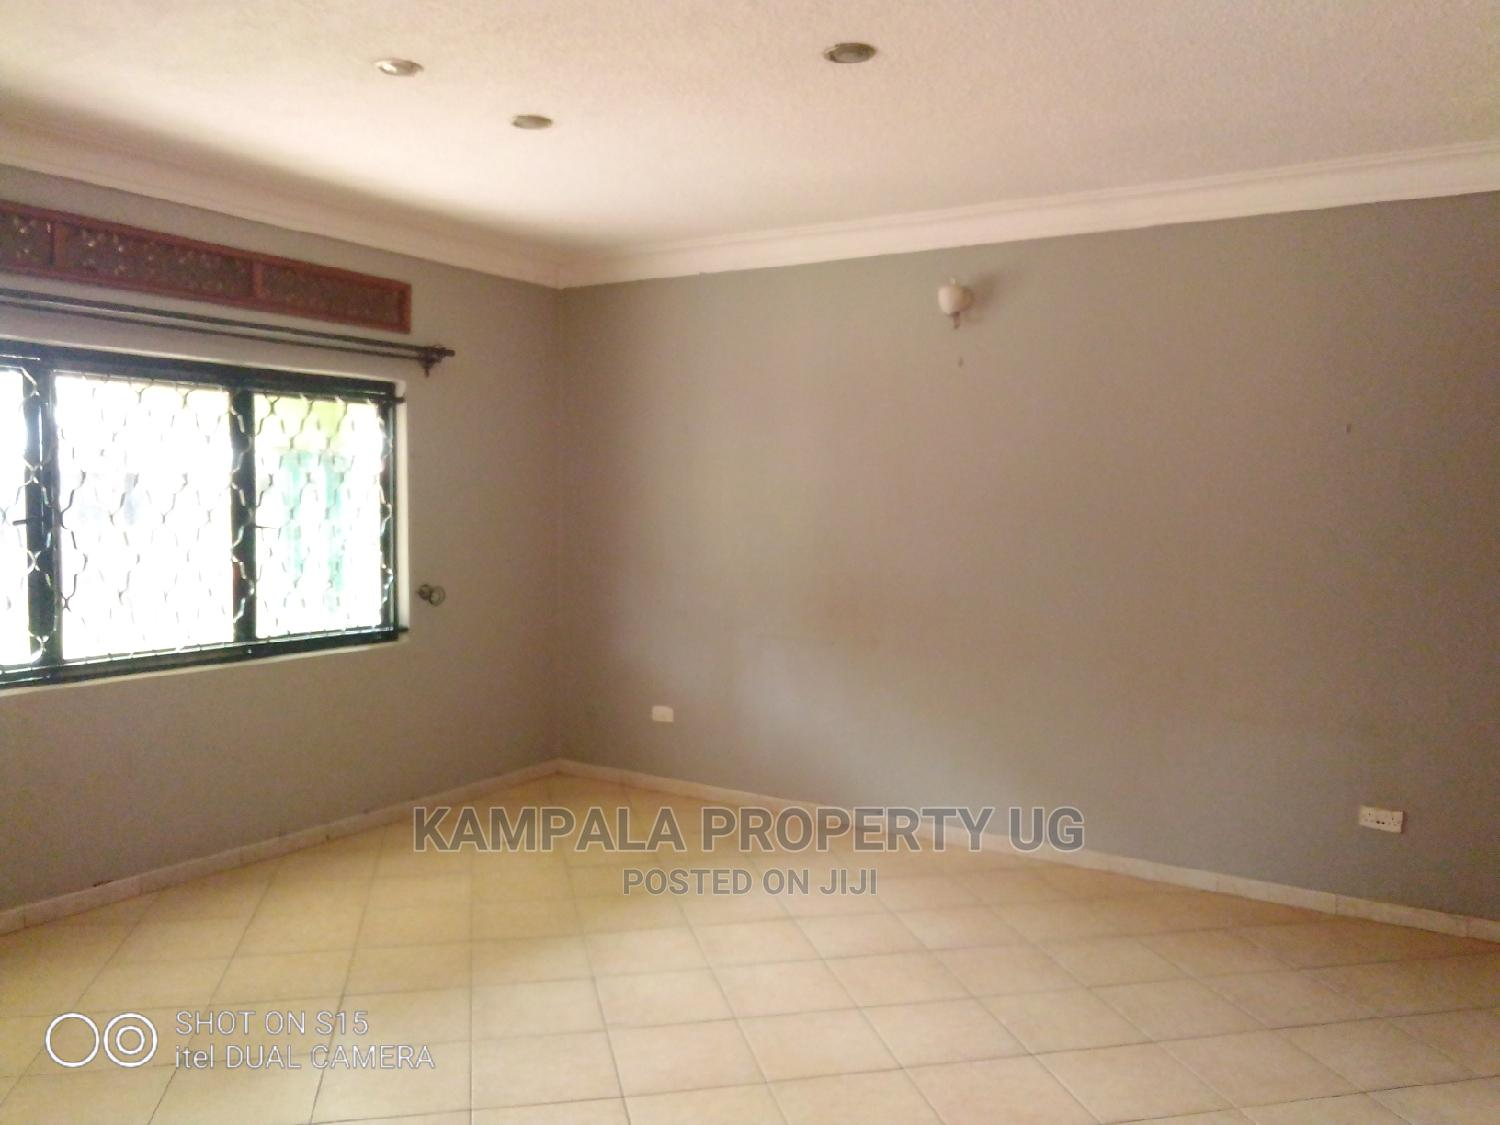 3bdrm Bungalow in Kyaliwajjala, Central Division for Rent   Houses & Apartments For Rent for sale in Central Division, Kampala, Uganda